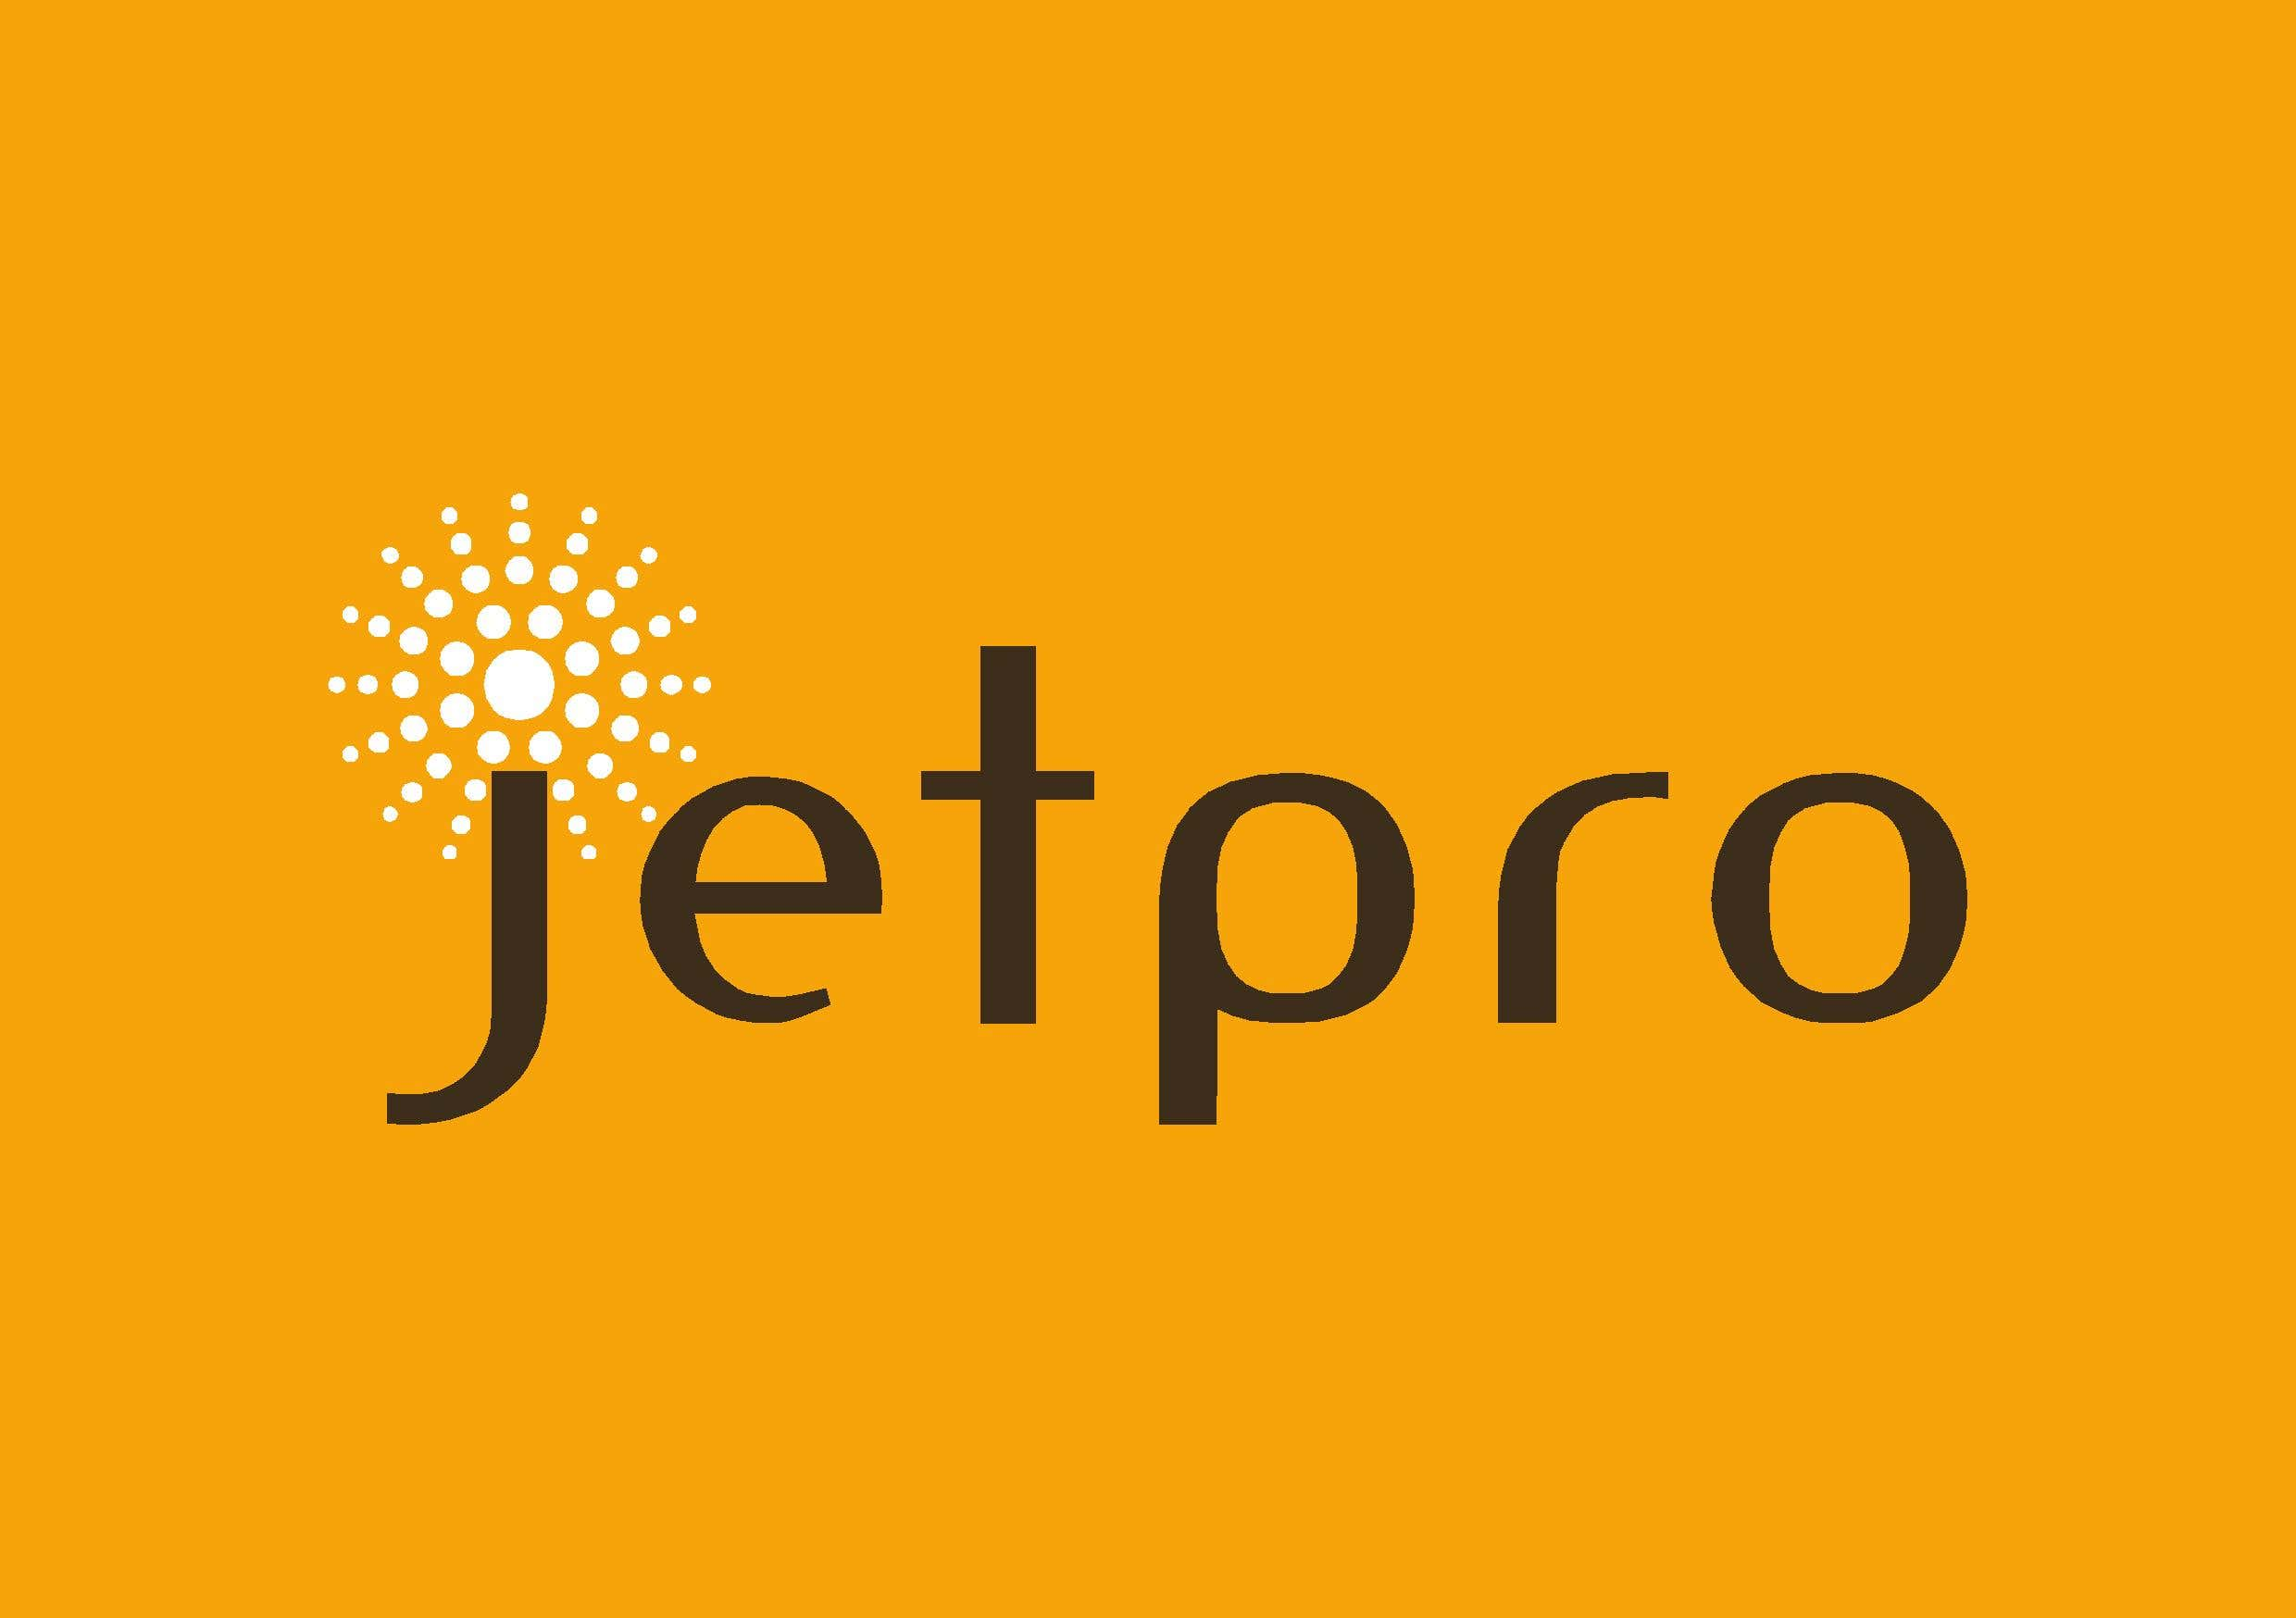 Profile image of JetPro